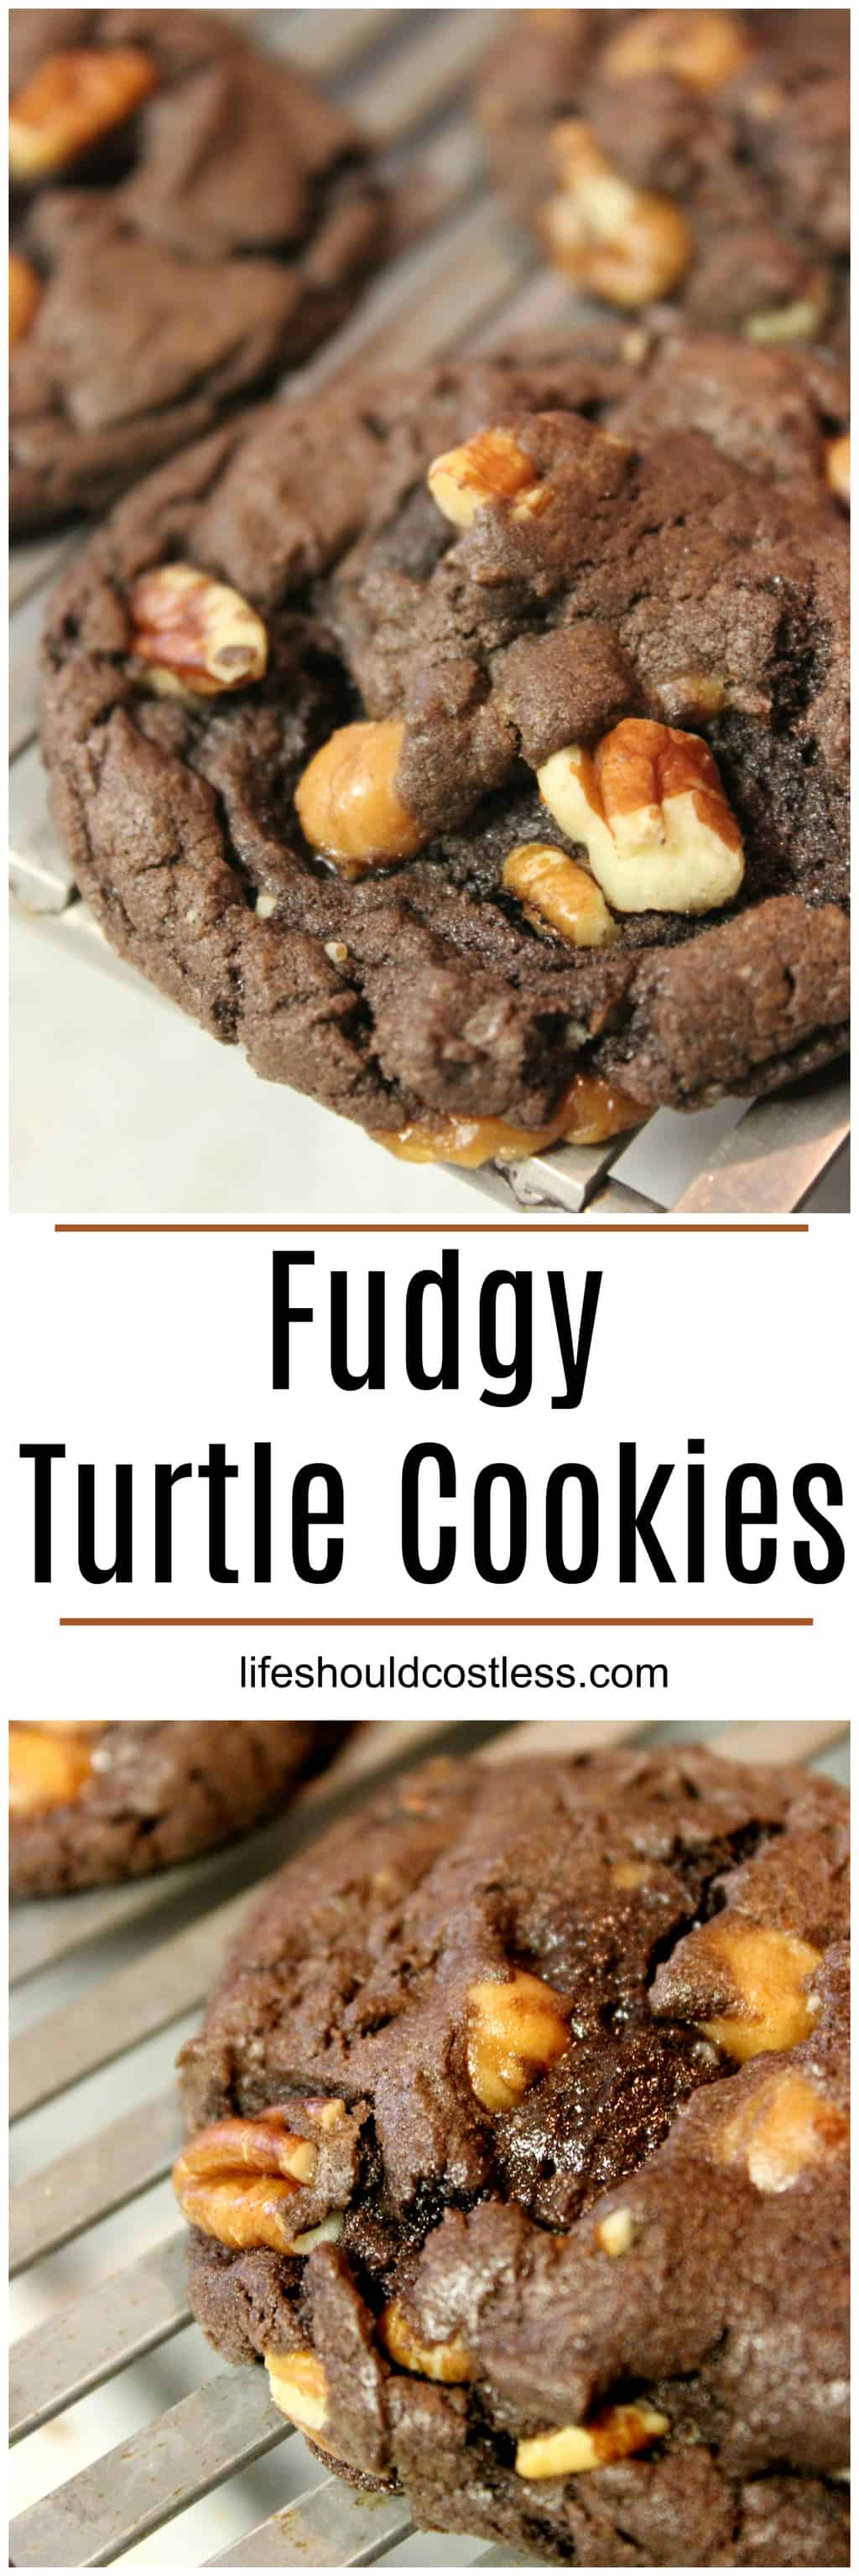 Fudgy Turtle Cookies